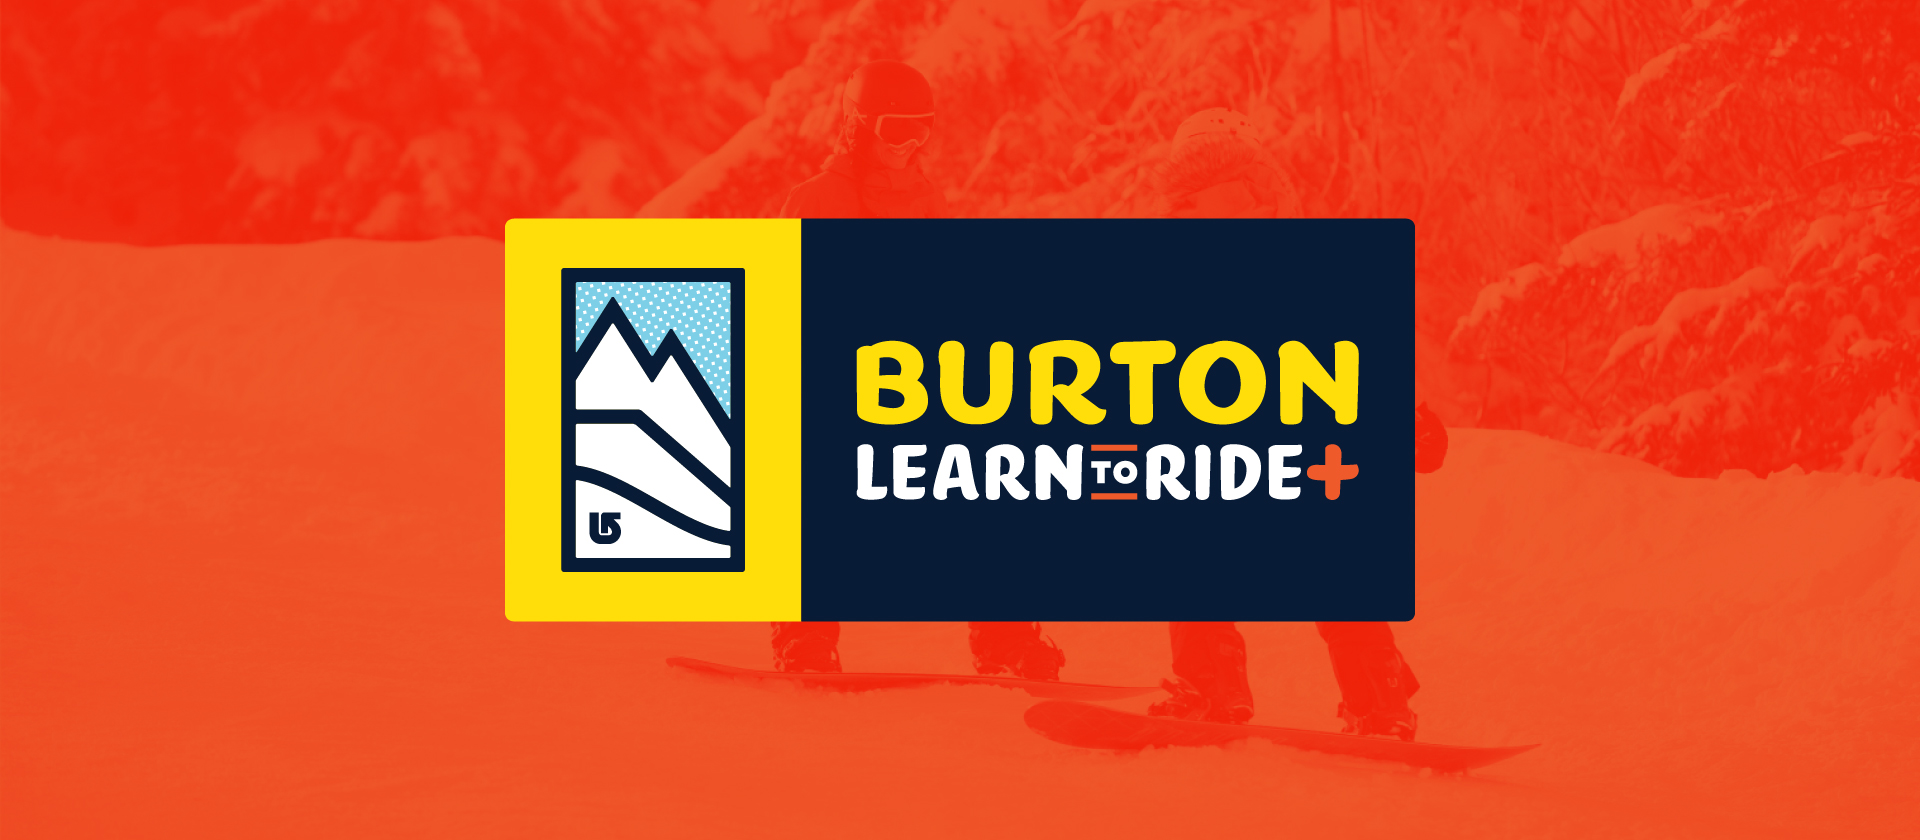 Burton Learn to ride Banner image